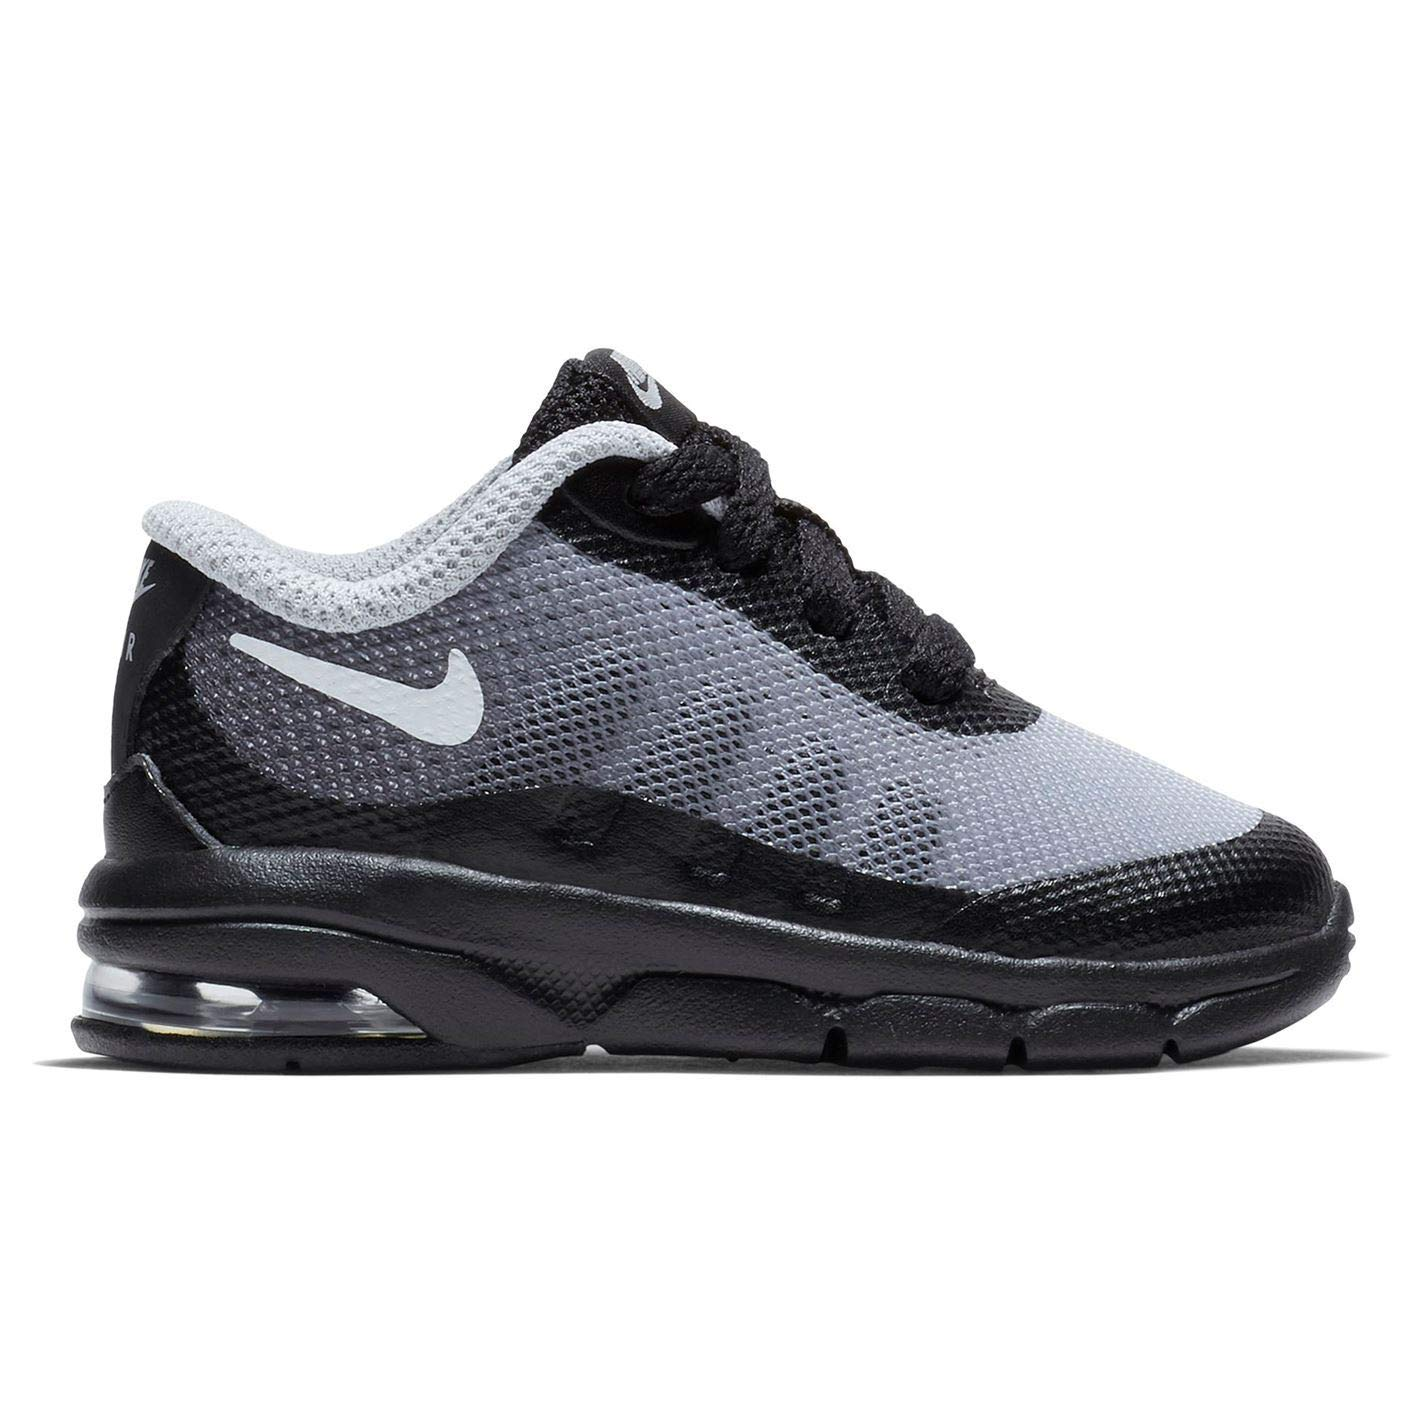 Details about Nike Air Max Invigor Print Boys Trainers BlackWhiteGrey Shoes Footwear